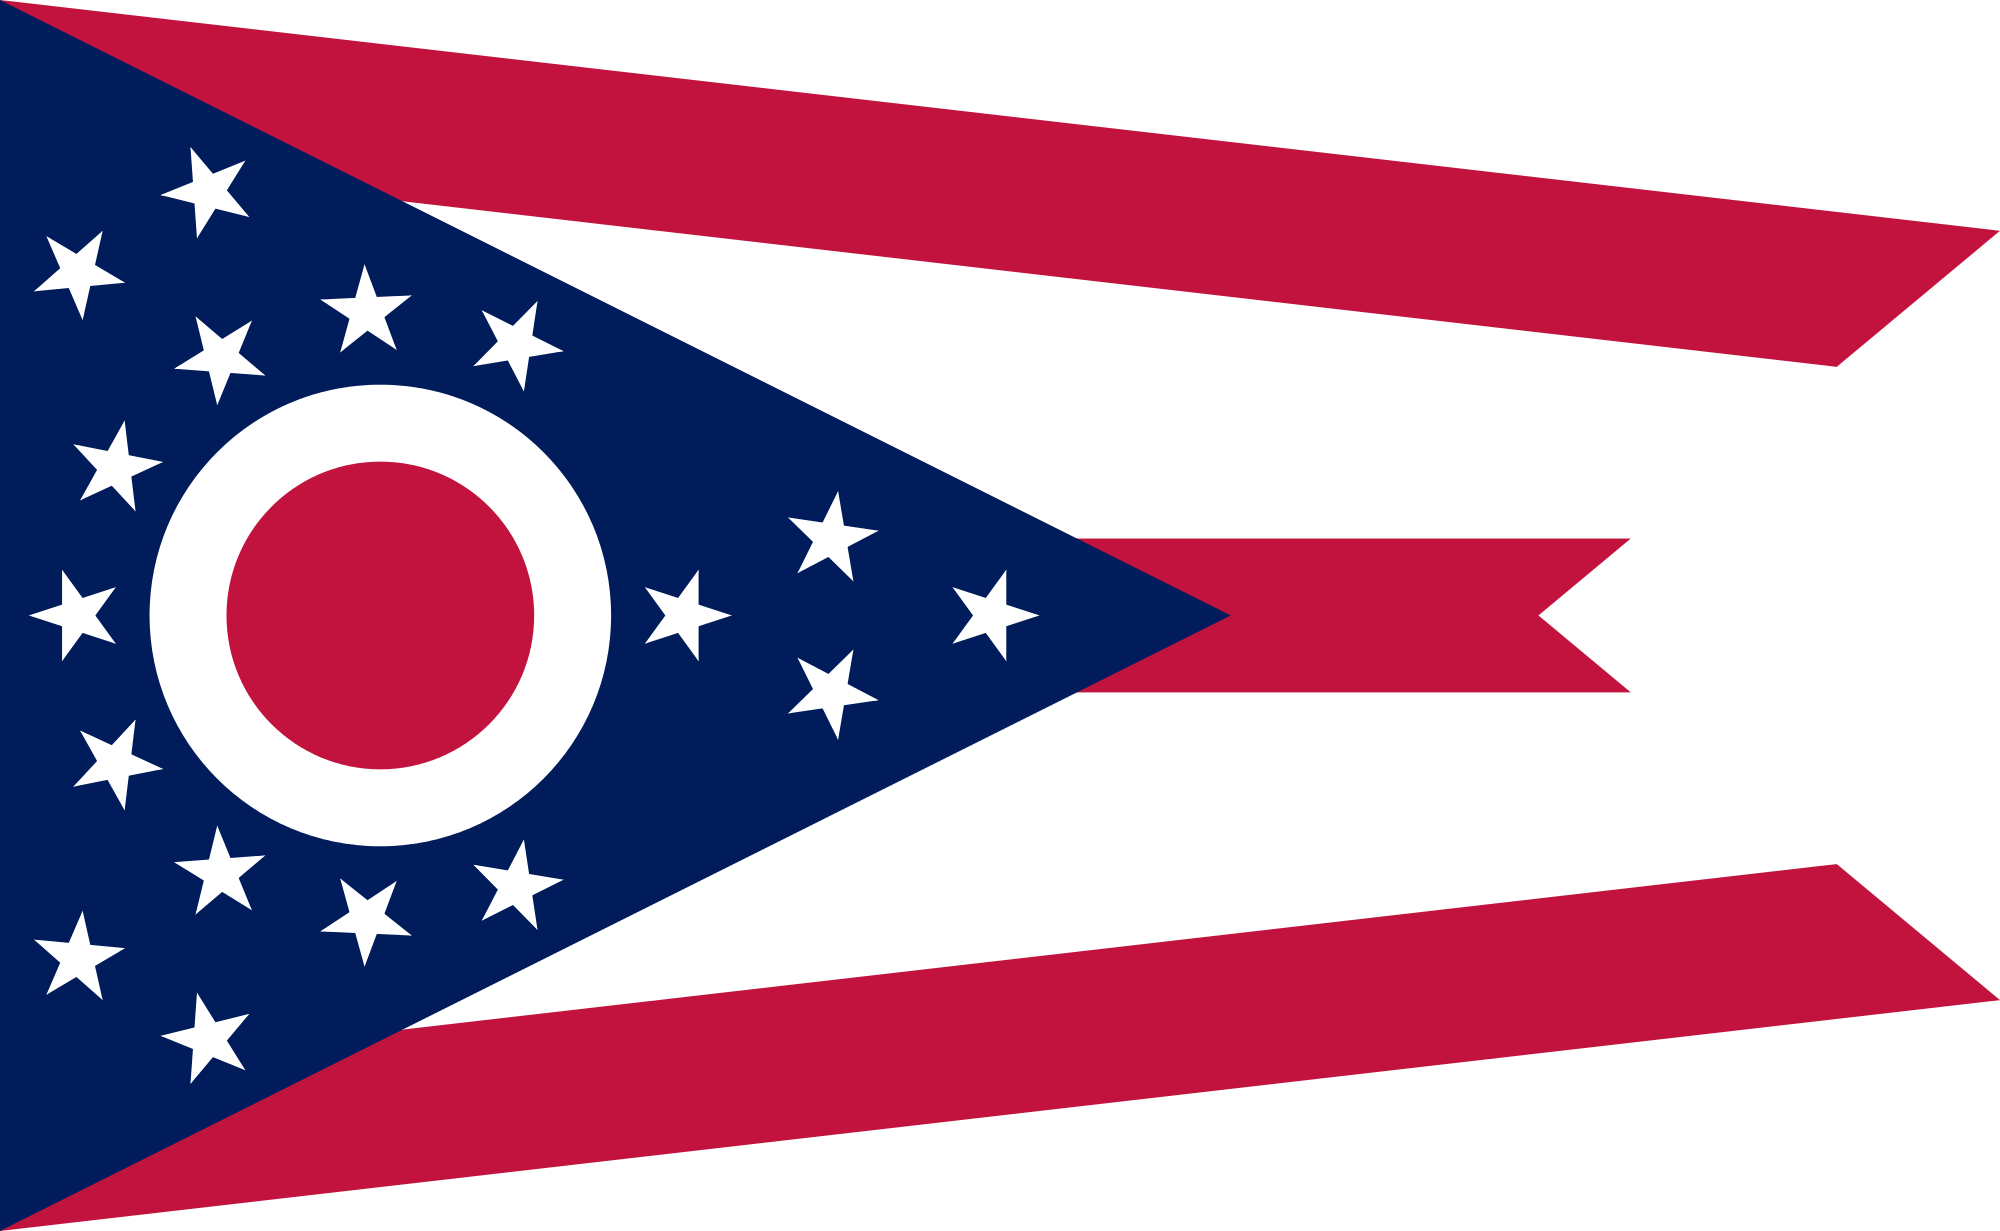 Rugged flag baseball clipart picture freeuse Outline of Ohio - Wikipedia, the free encyclopedia | Pillows ... picture freeuse